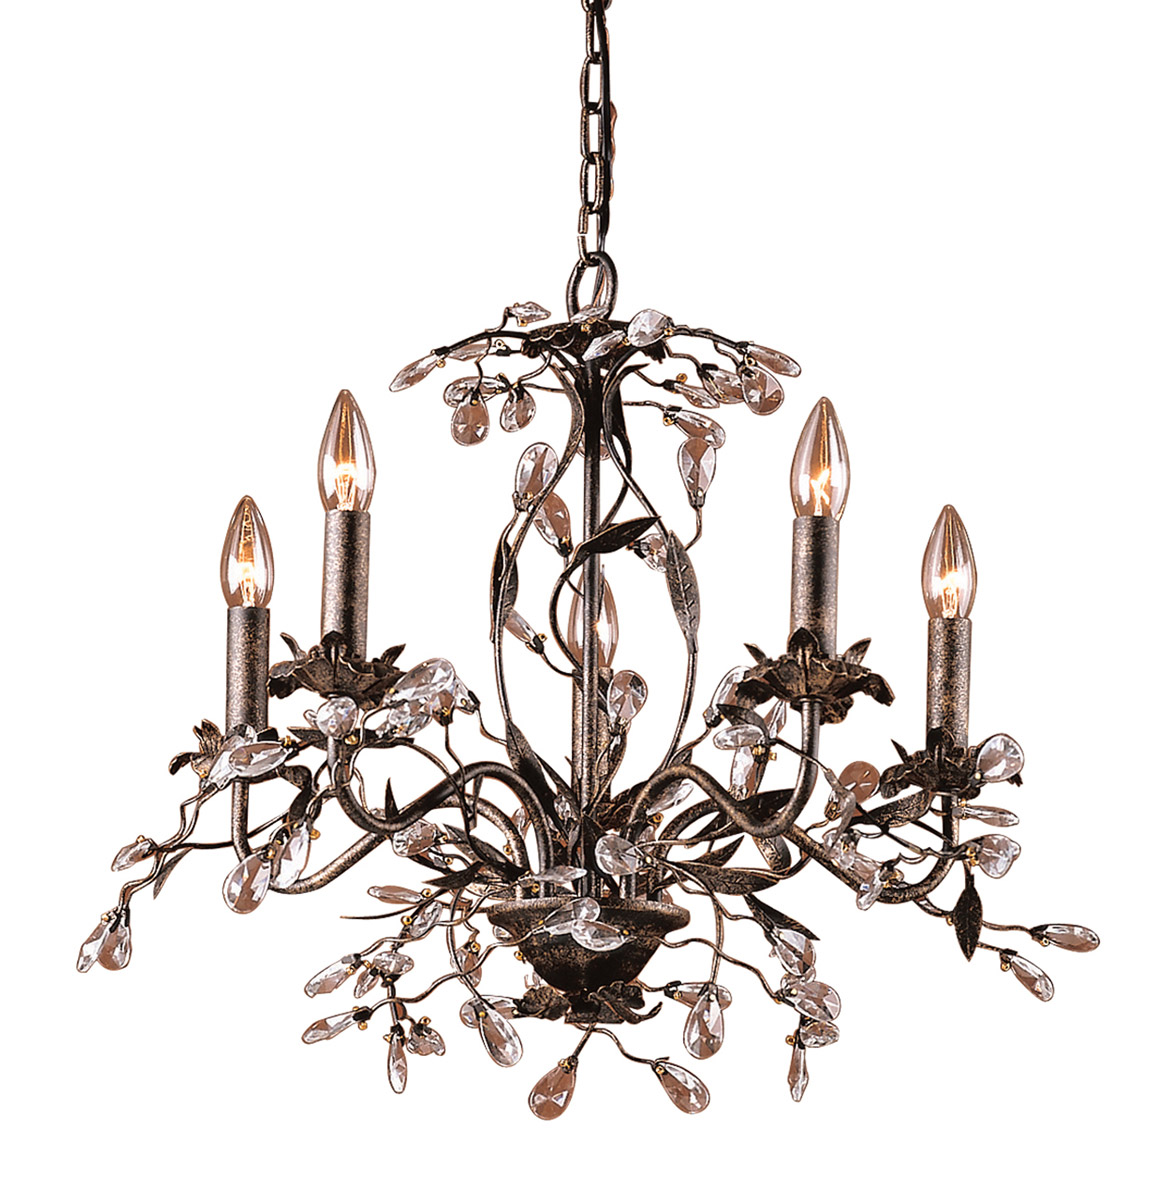 Contemporary Crystal Chandeliers ELK Lighting, Accentuations Brand, Furniture by ABD